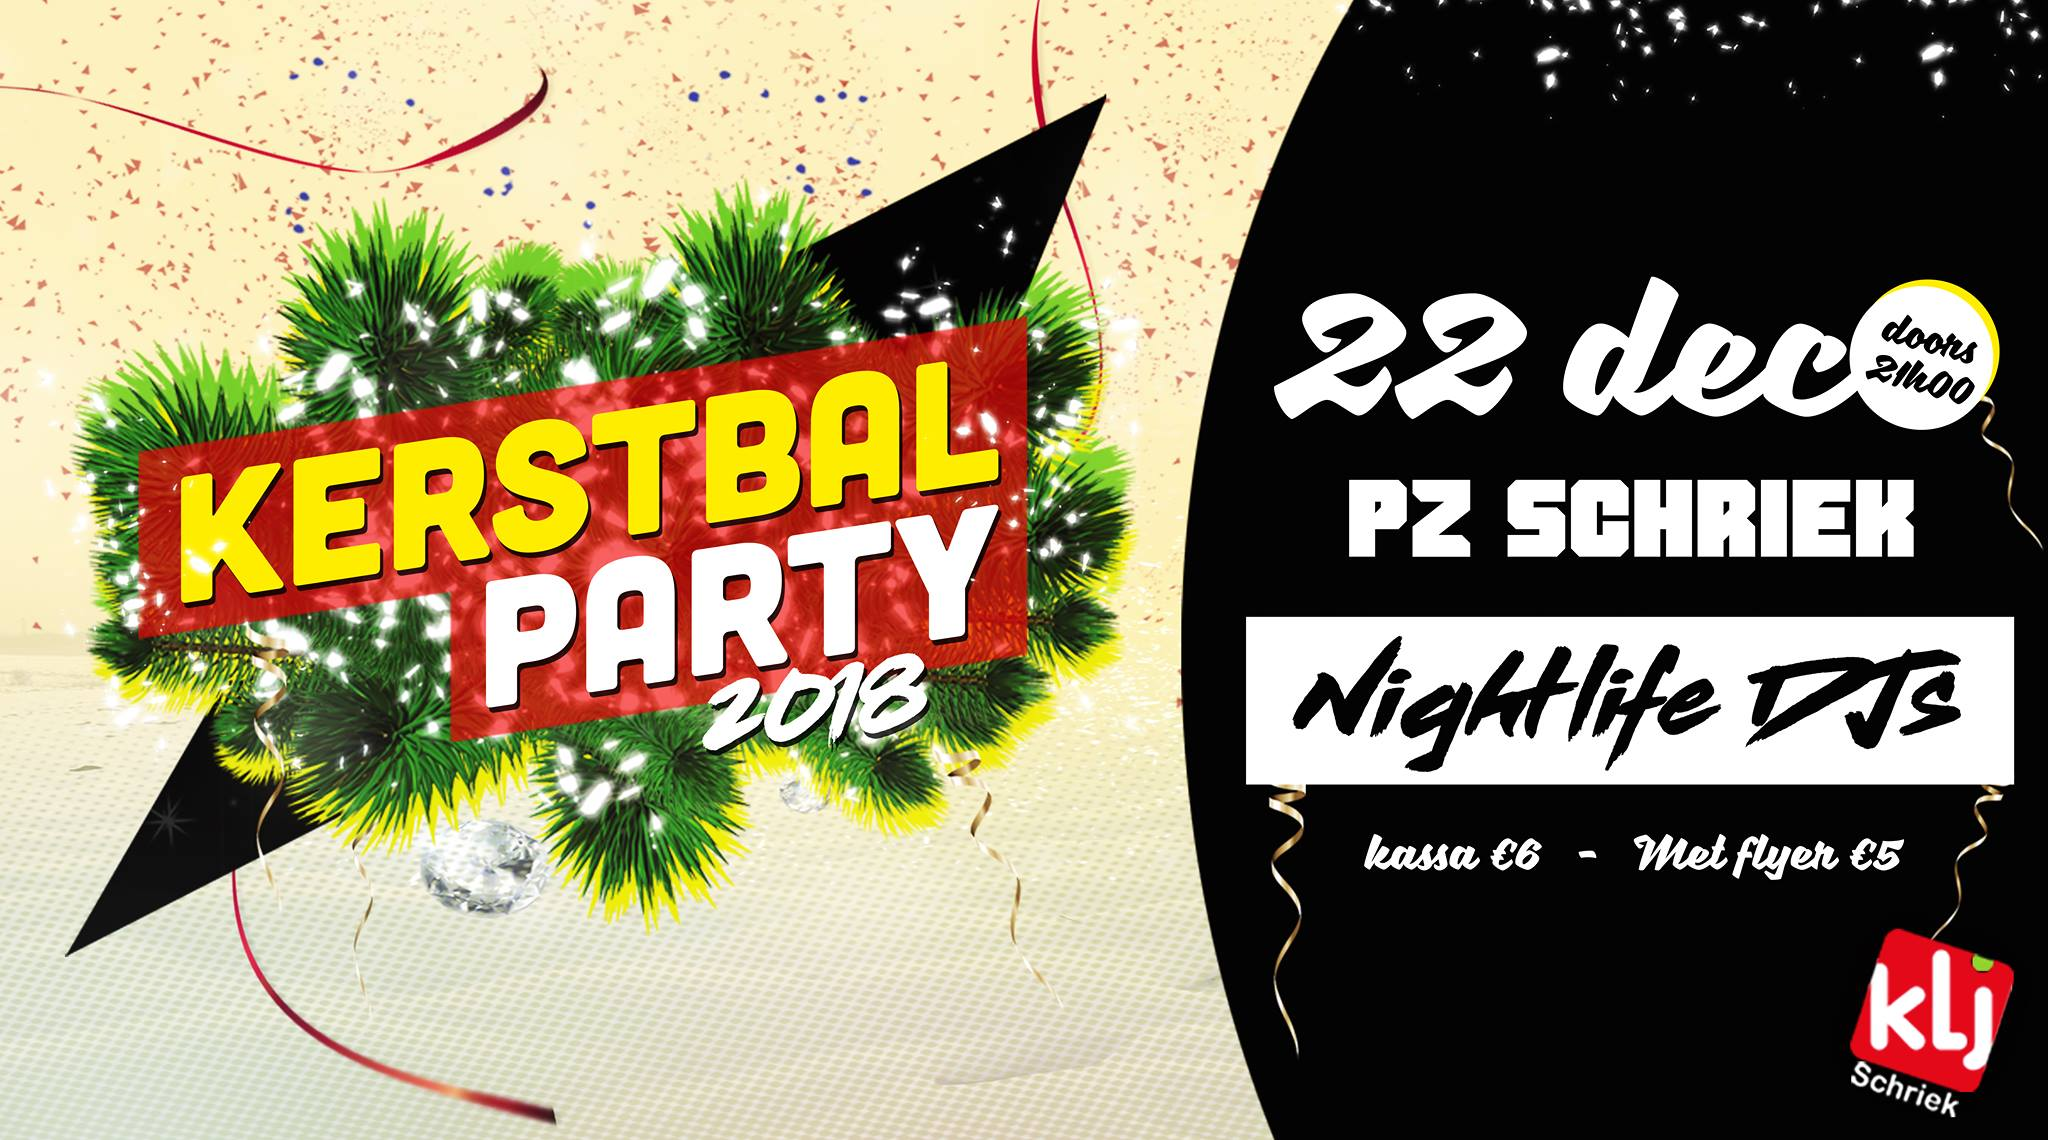 Kerstbalparty 2018